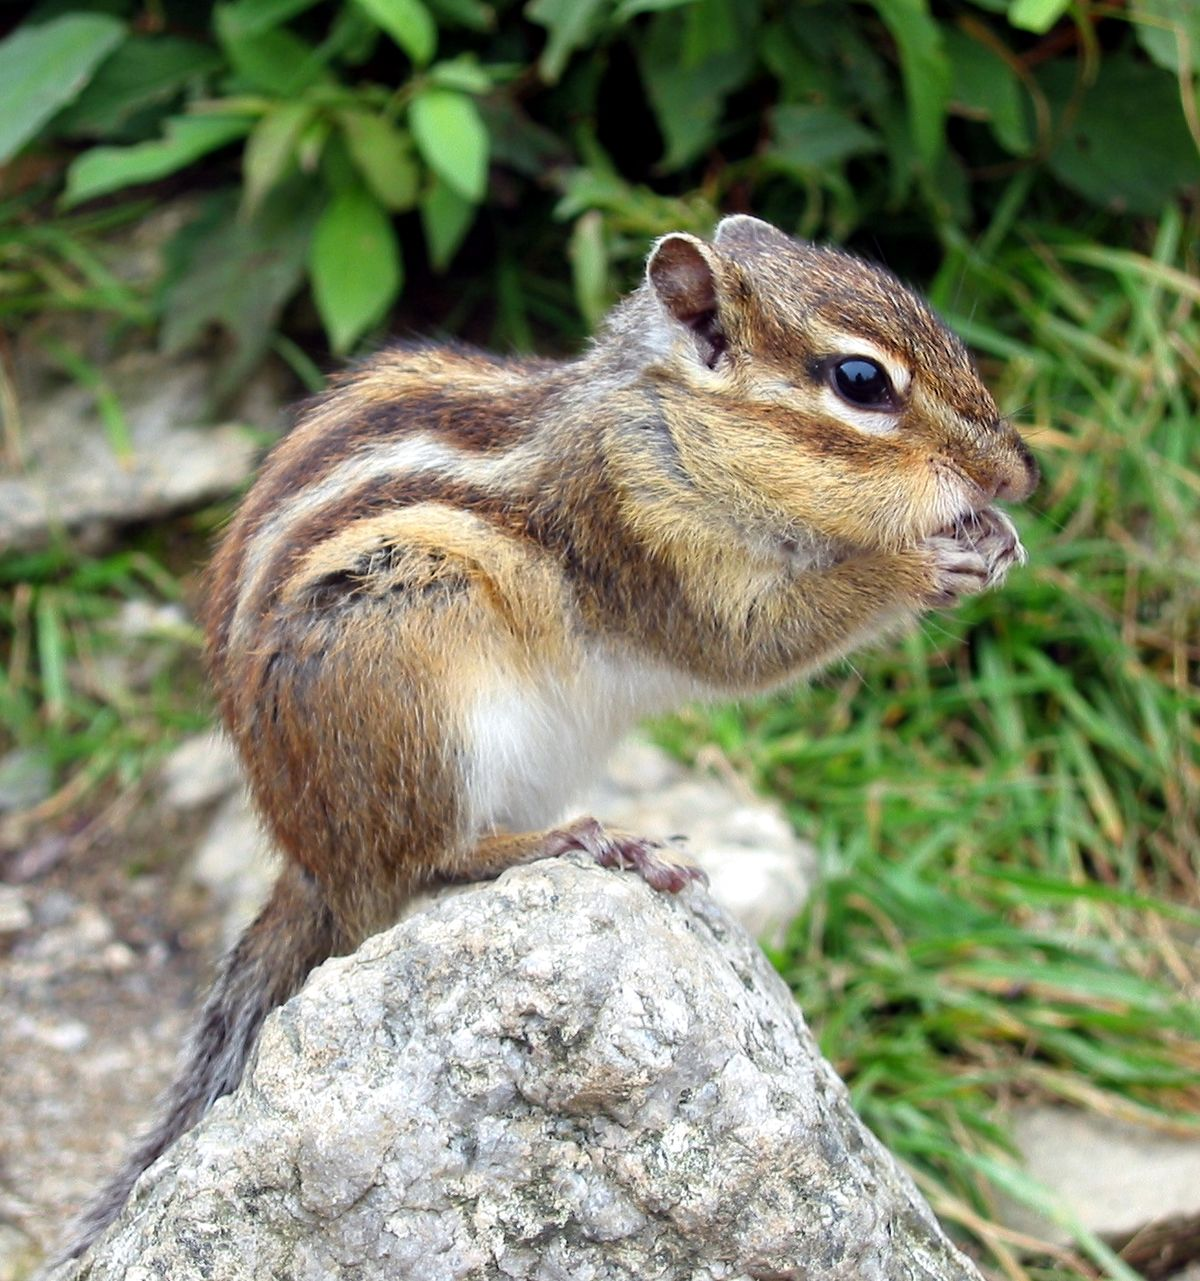 siberian chipmunk wikipedia